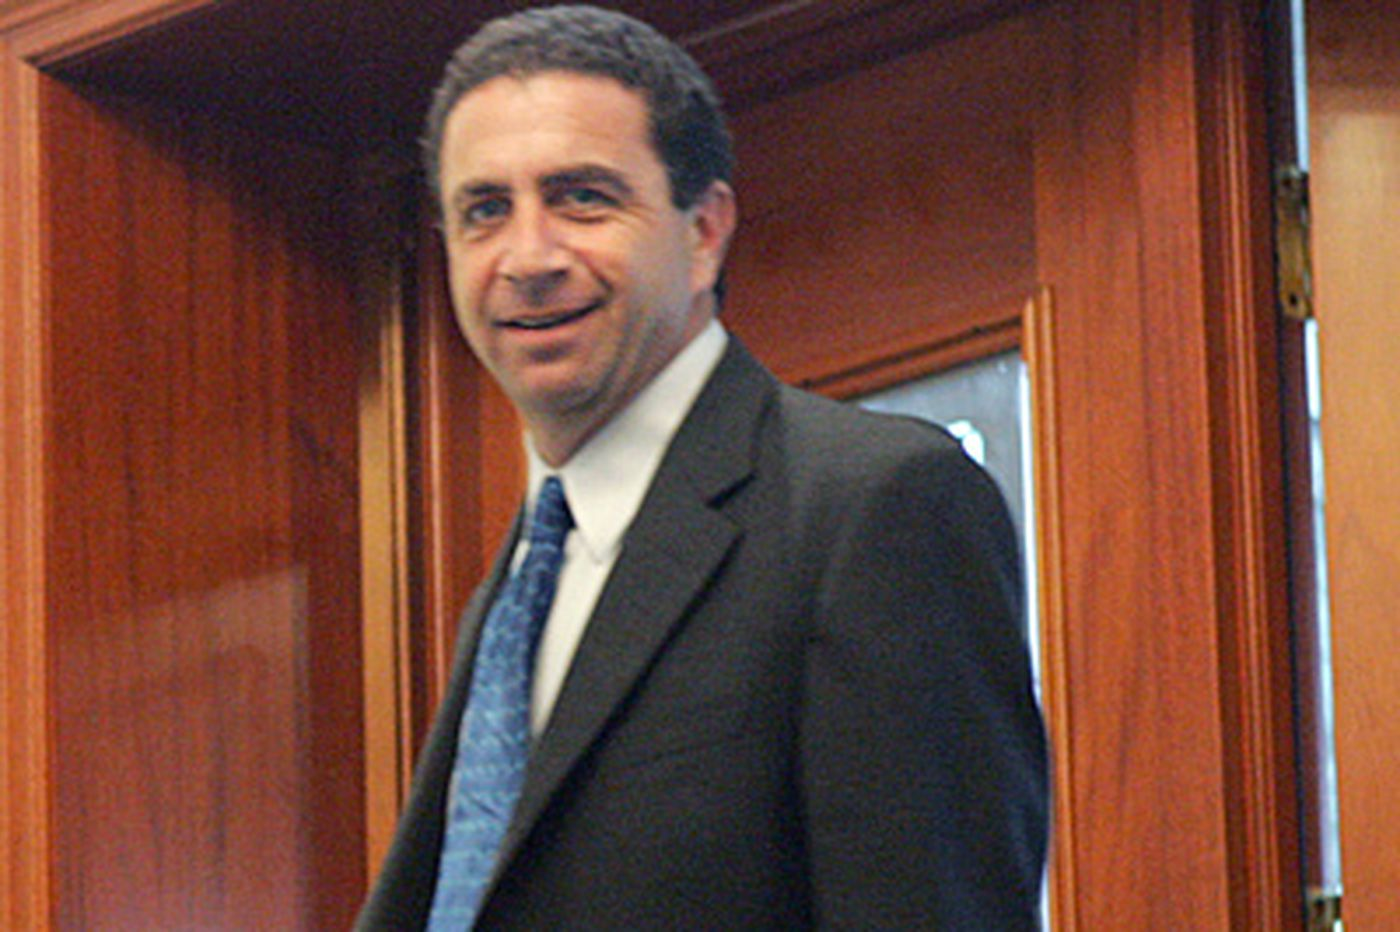 Traffic charges against assemblyman dismissed